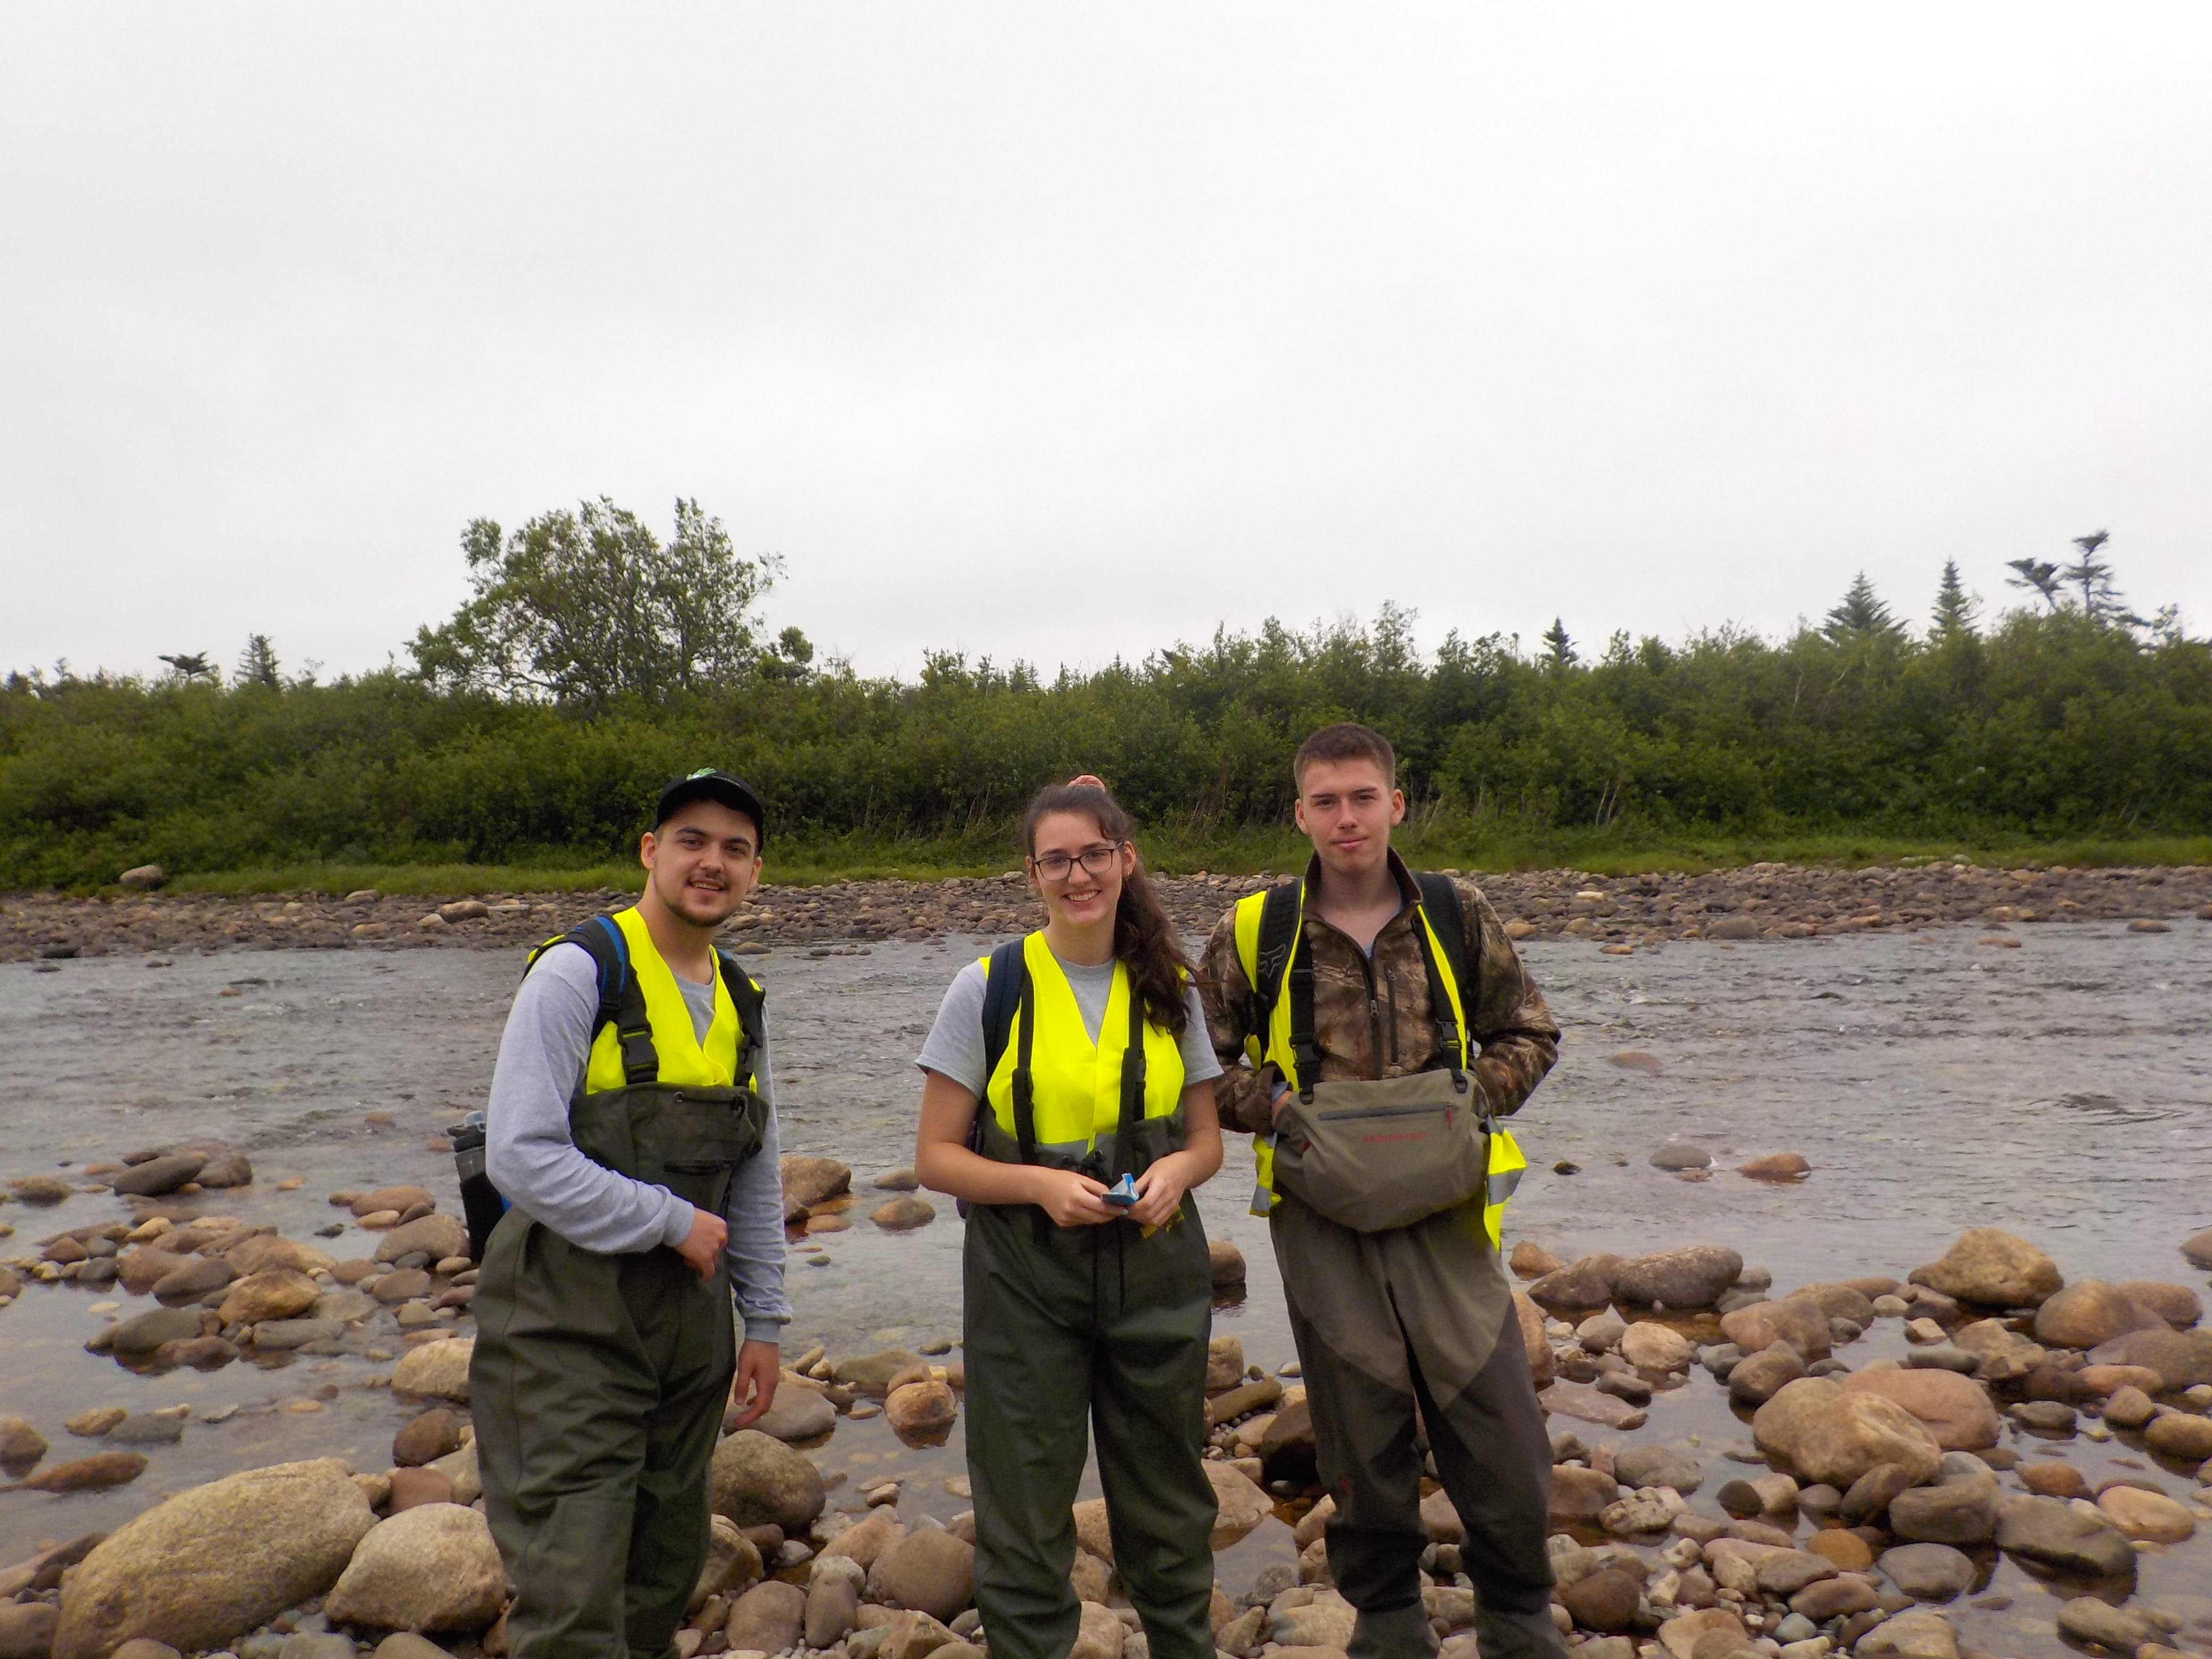 Members of the Bay St. George South Area Development Association's Green Team (from left) Jayson Griffin, Dawn Quilty and Jayden Harris are cleaning up debris from the tributaries of three rivers in the area.